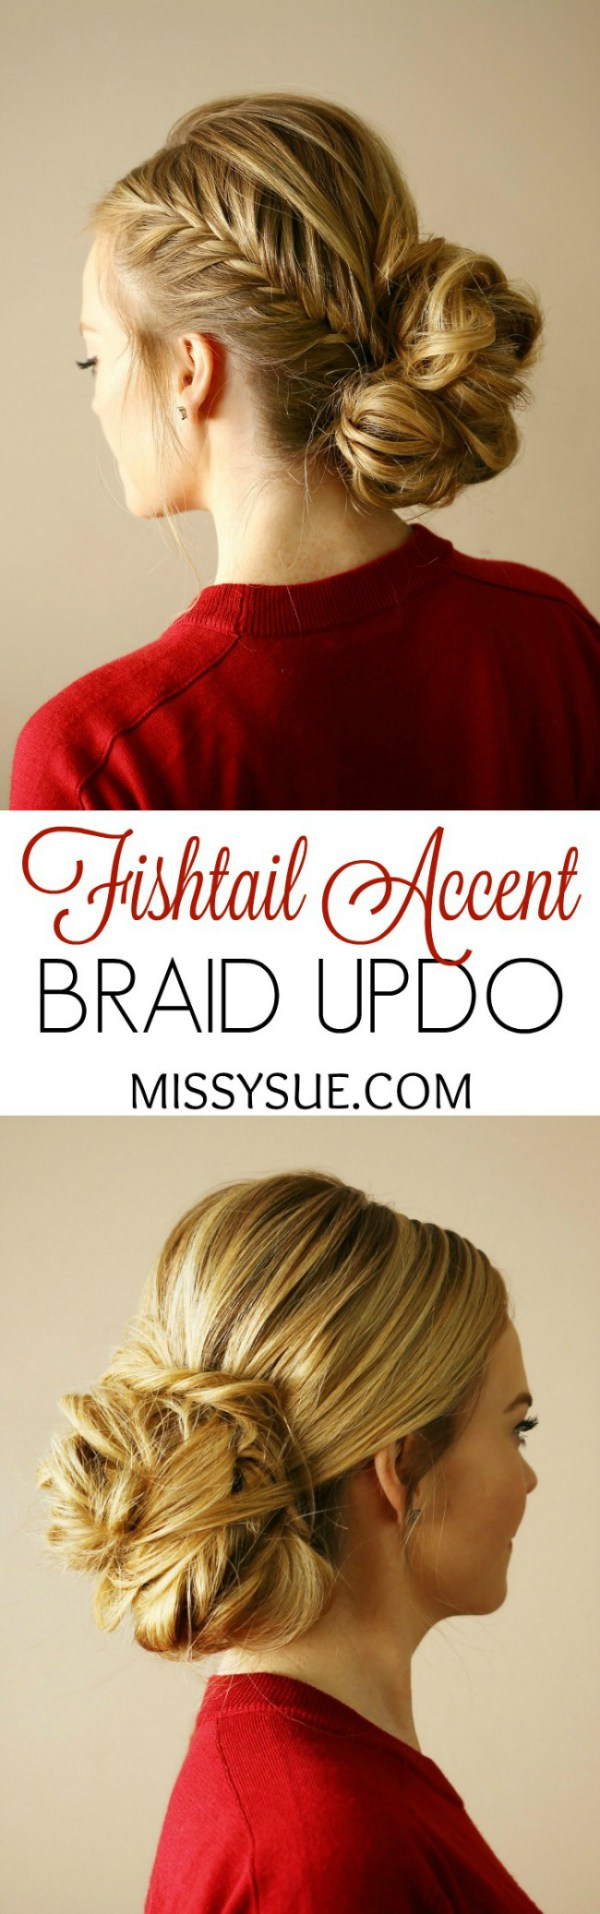 Fishtail accent braid updo fishtail updo and hair style